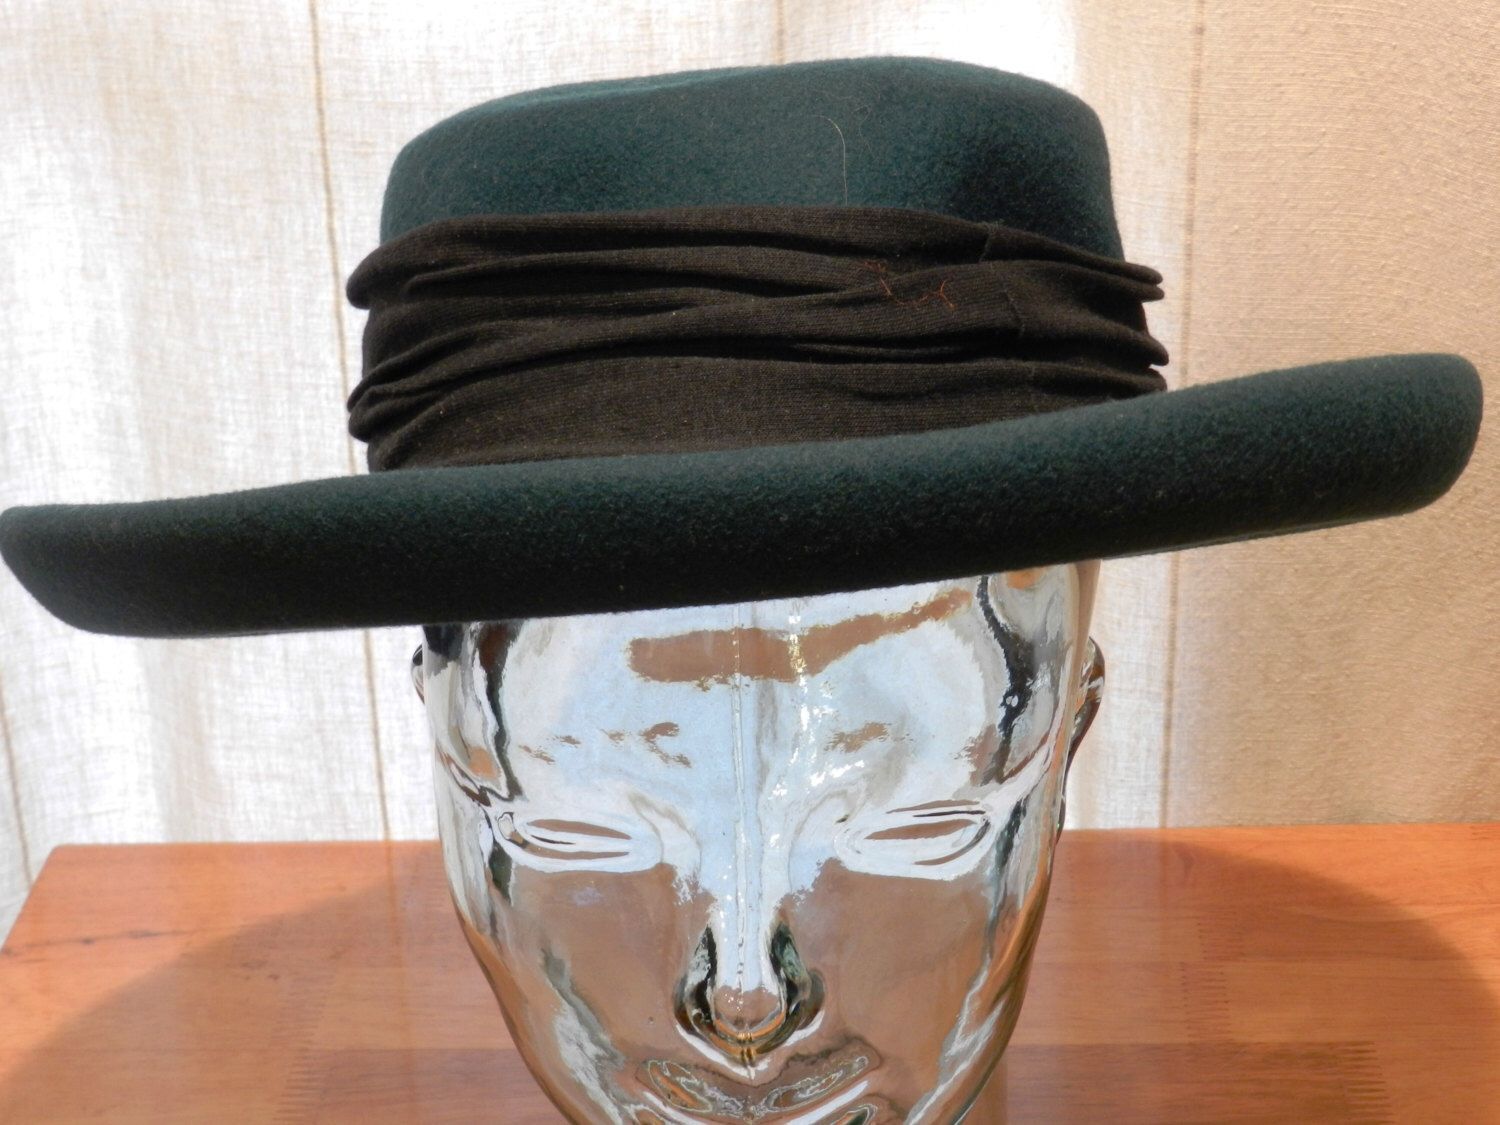 Vintage Women s Hat by Bollman Hat Co. Green Doeskin Felt with black  Hatband Size 21 Inches 00816 by NWAttic on Etsy ... d946611e8c3